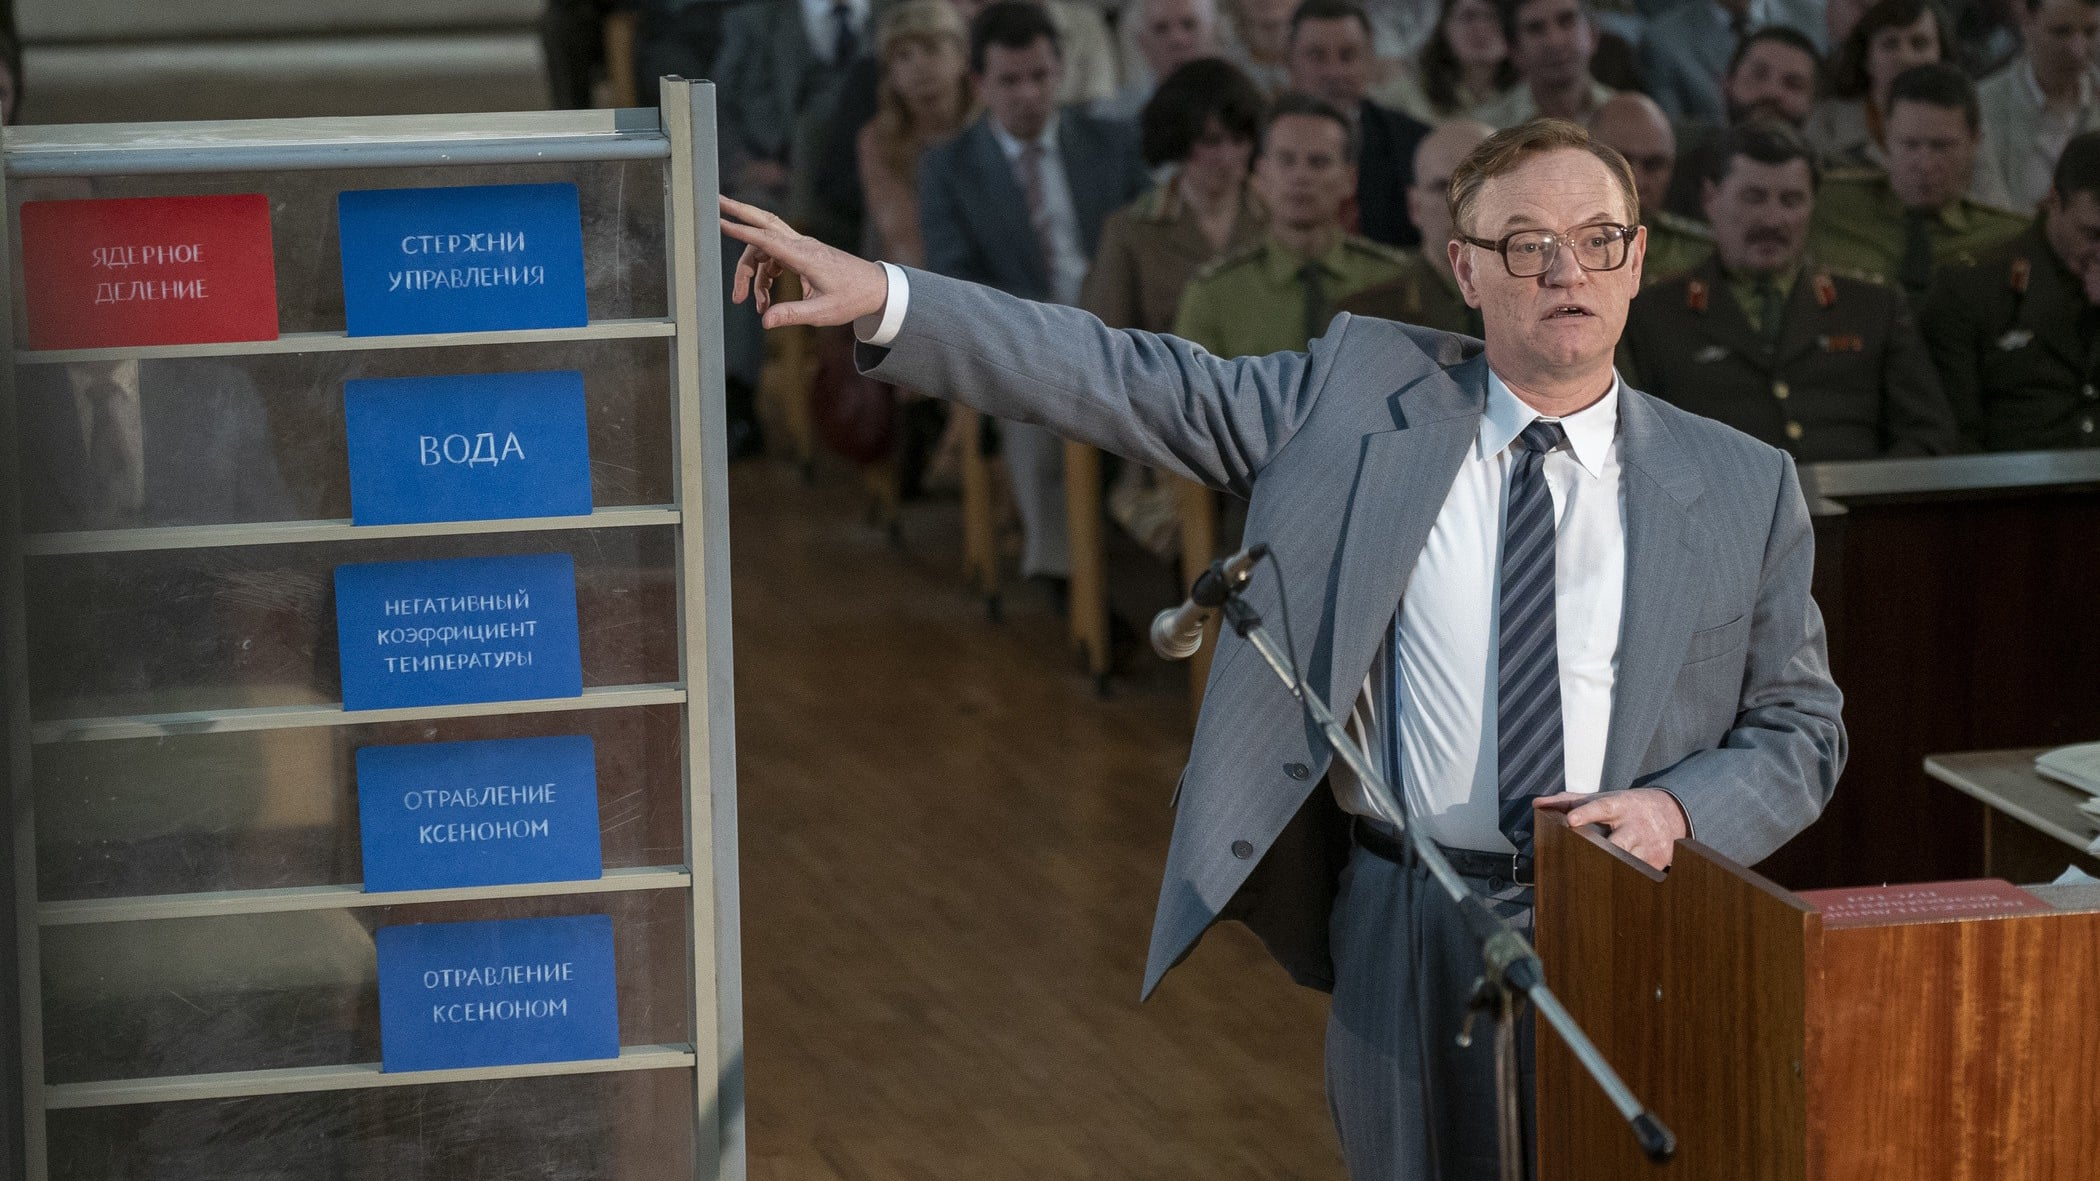 Valery Lagasov (Jared Harris) explains what happened in the Chernobyl reactor at the show trial